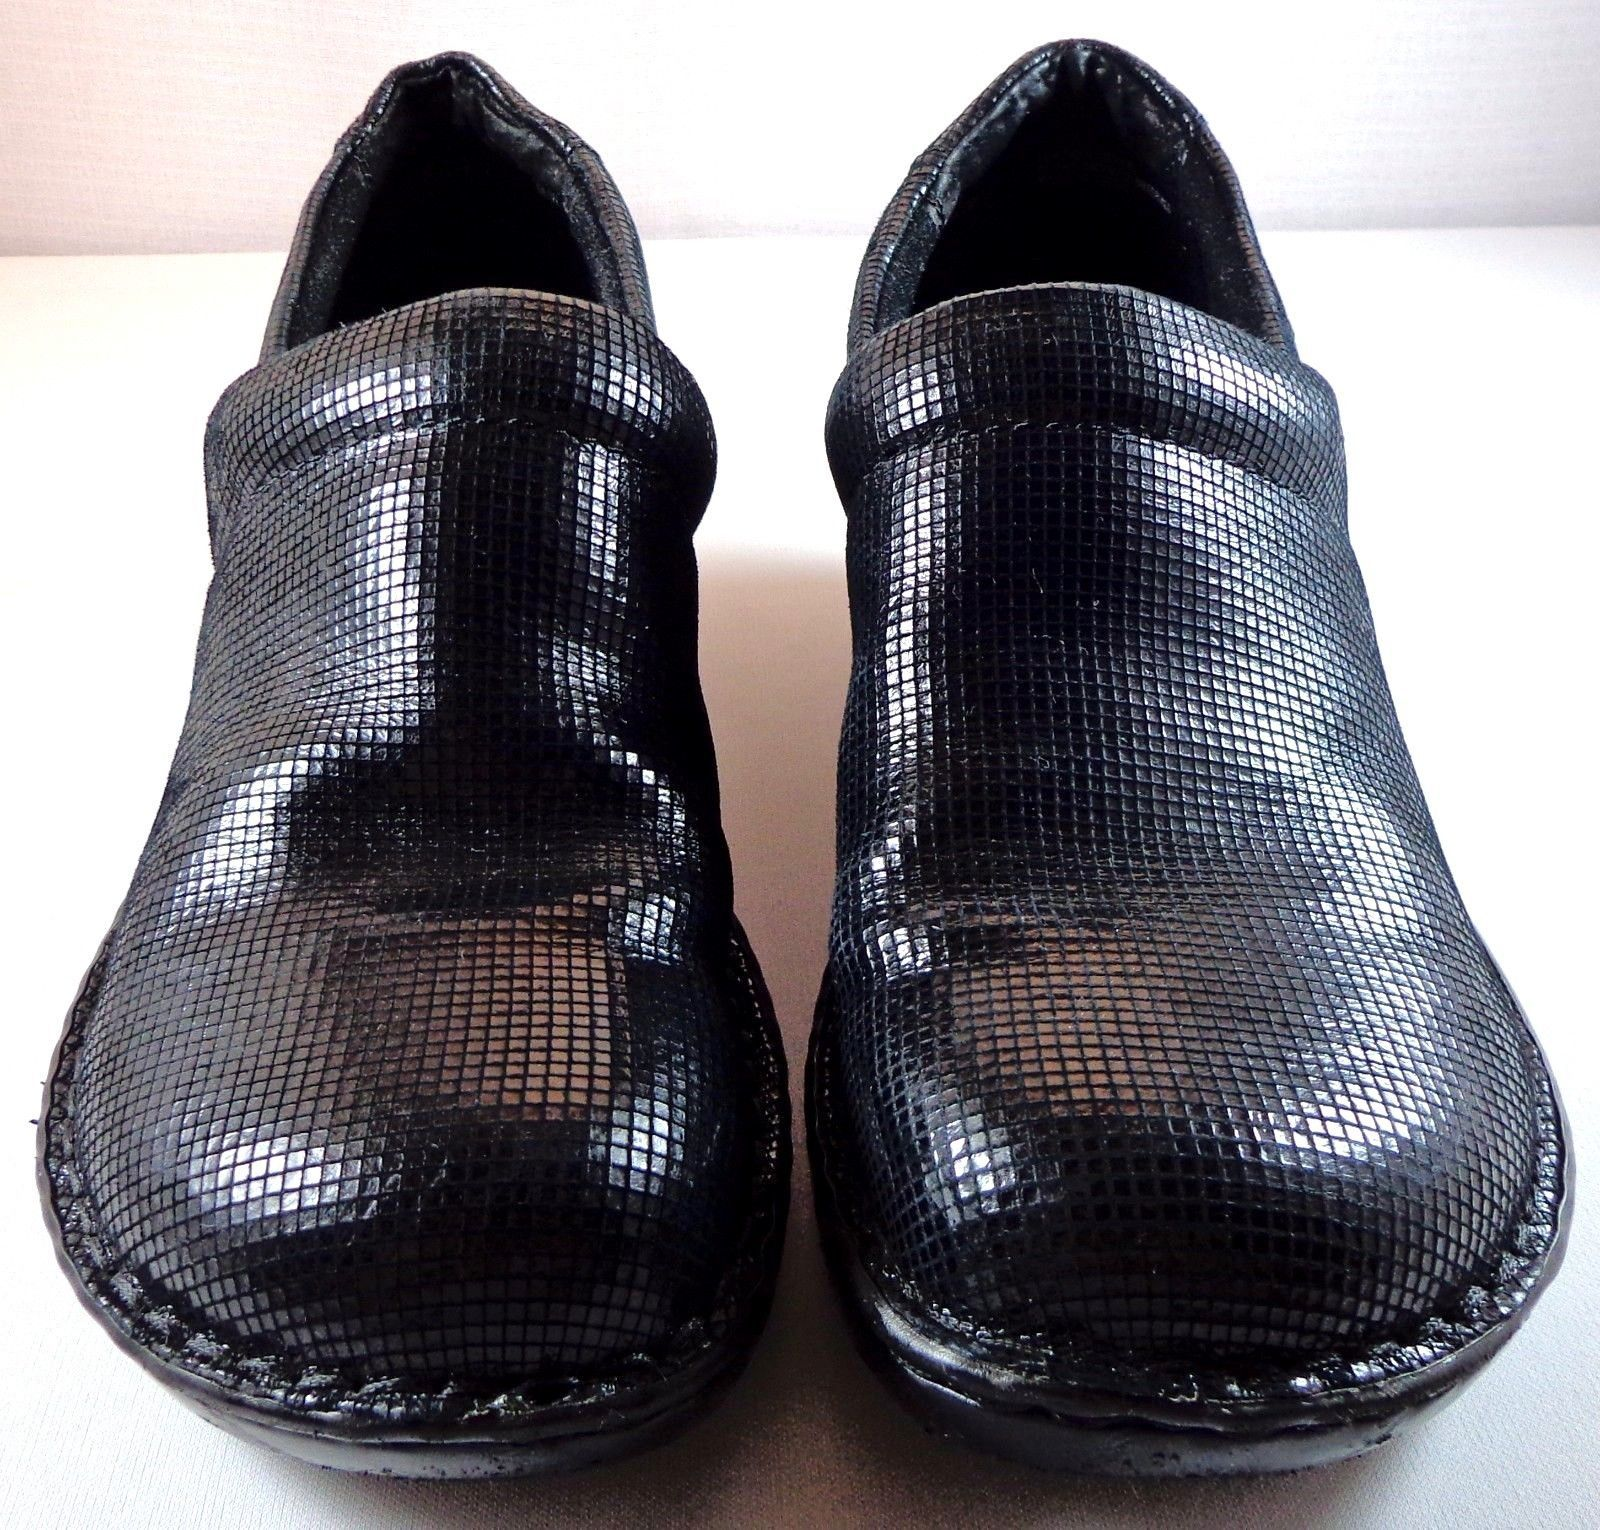 d6227b3708e3 S l1600. S l1600. Previous. BOC Born Concept Black Leather Peggy Clogs  Womens Size 11   43 Shoes